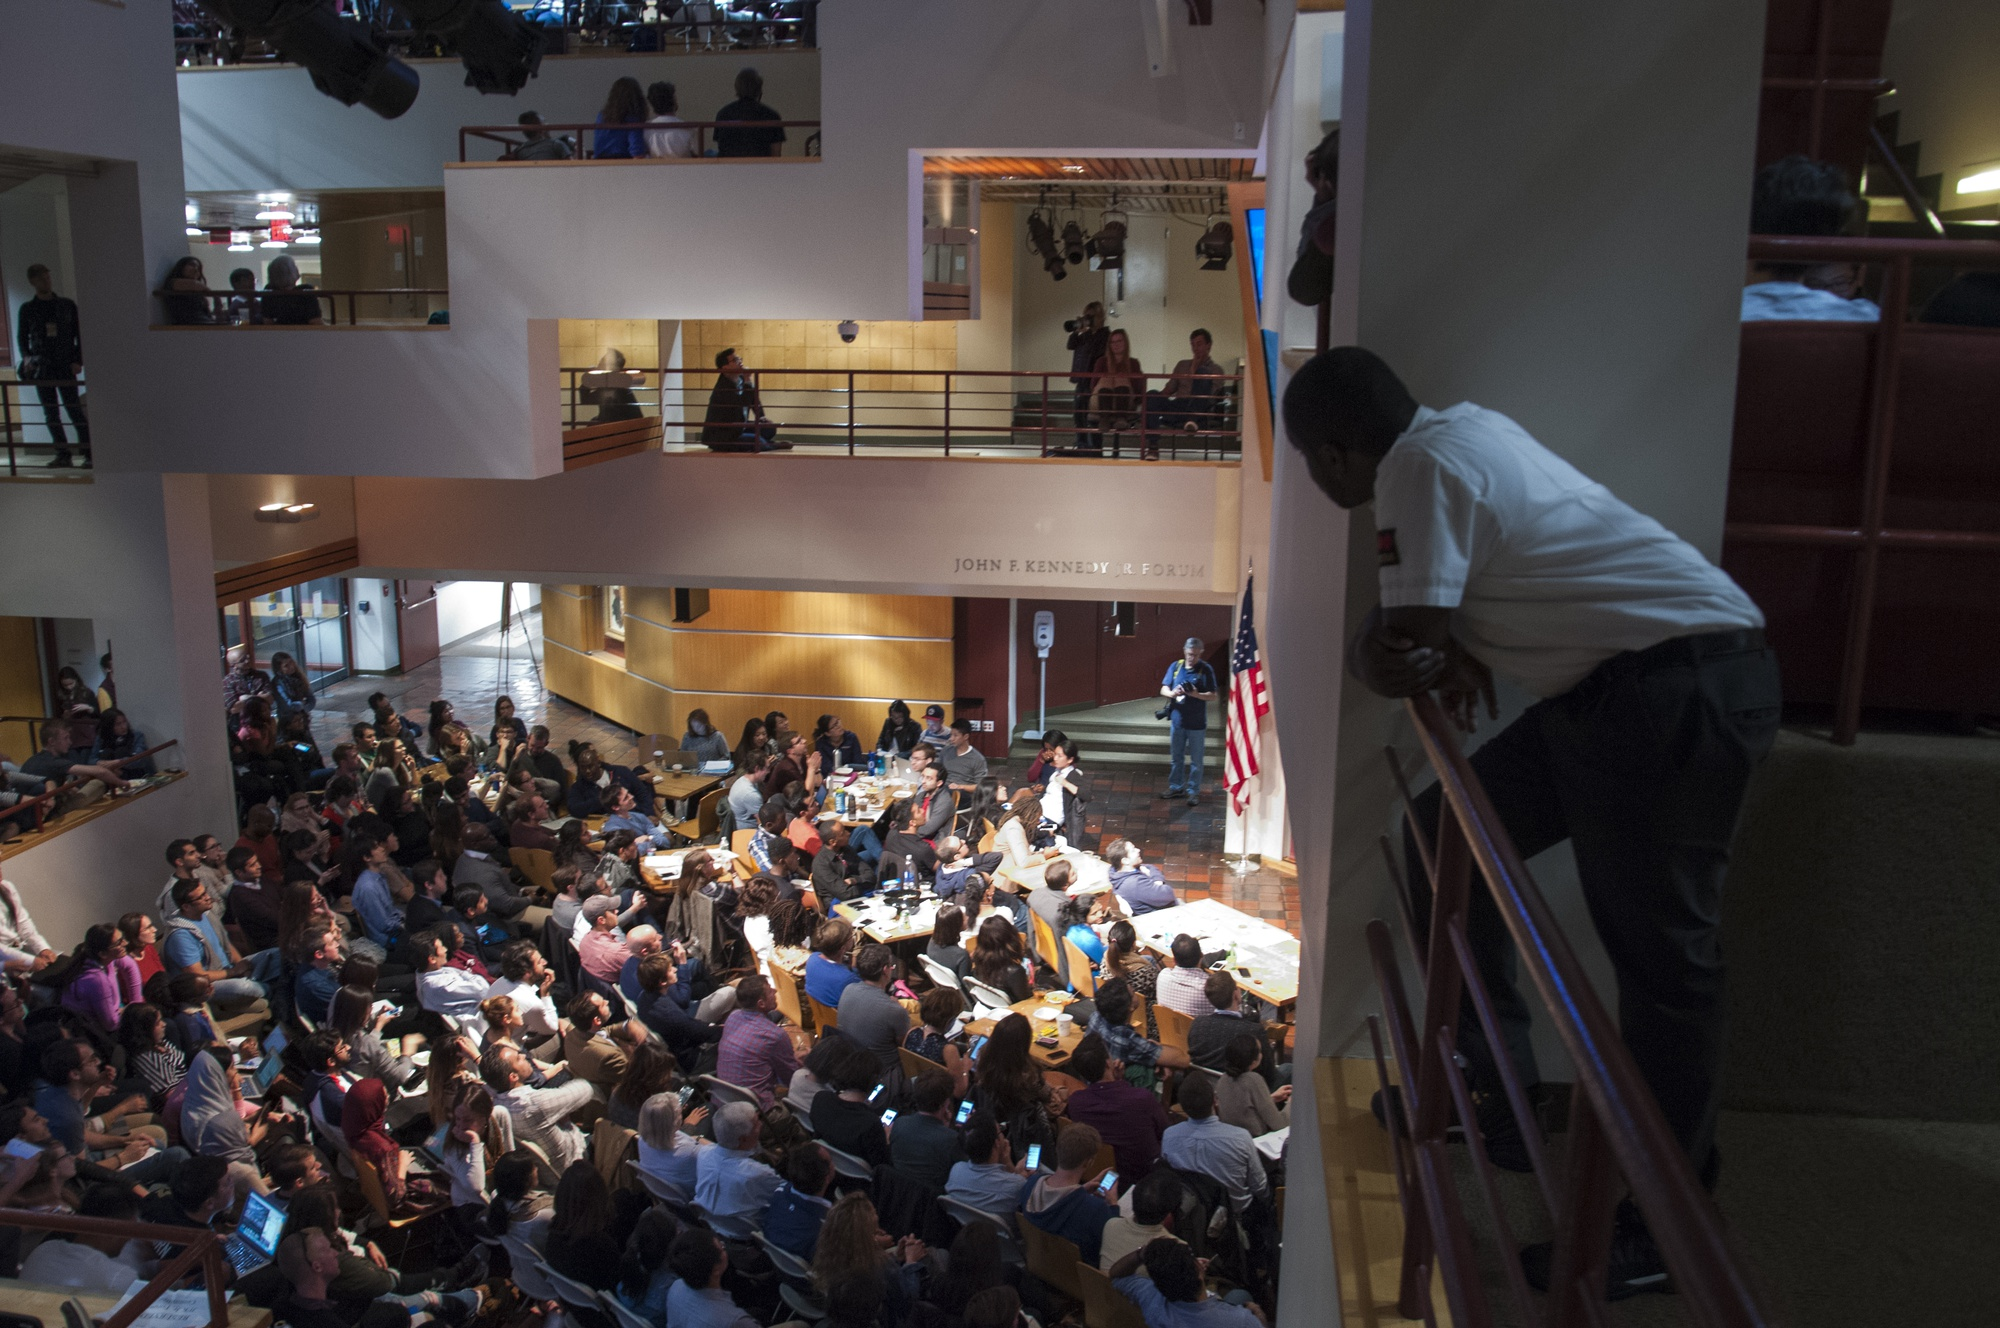 The sights inside Harvard's Institute of Politics during the first presidential debate of the 2016 general election.